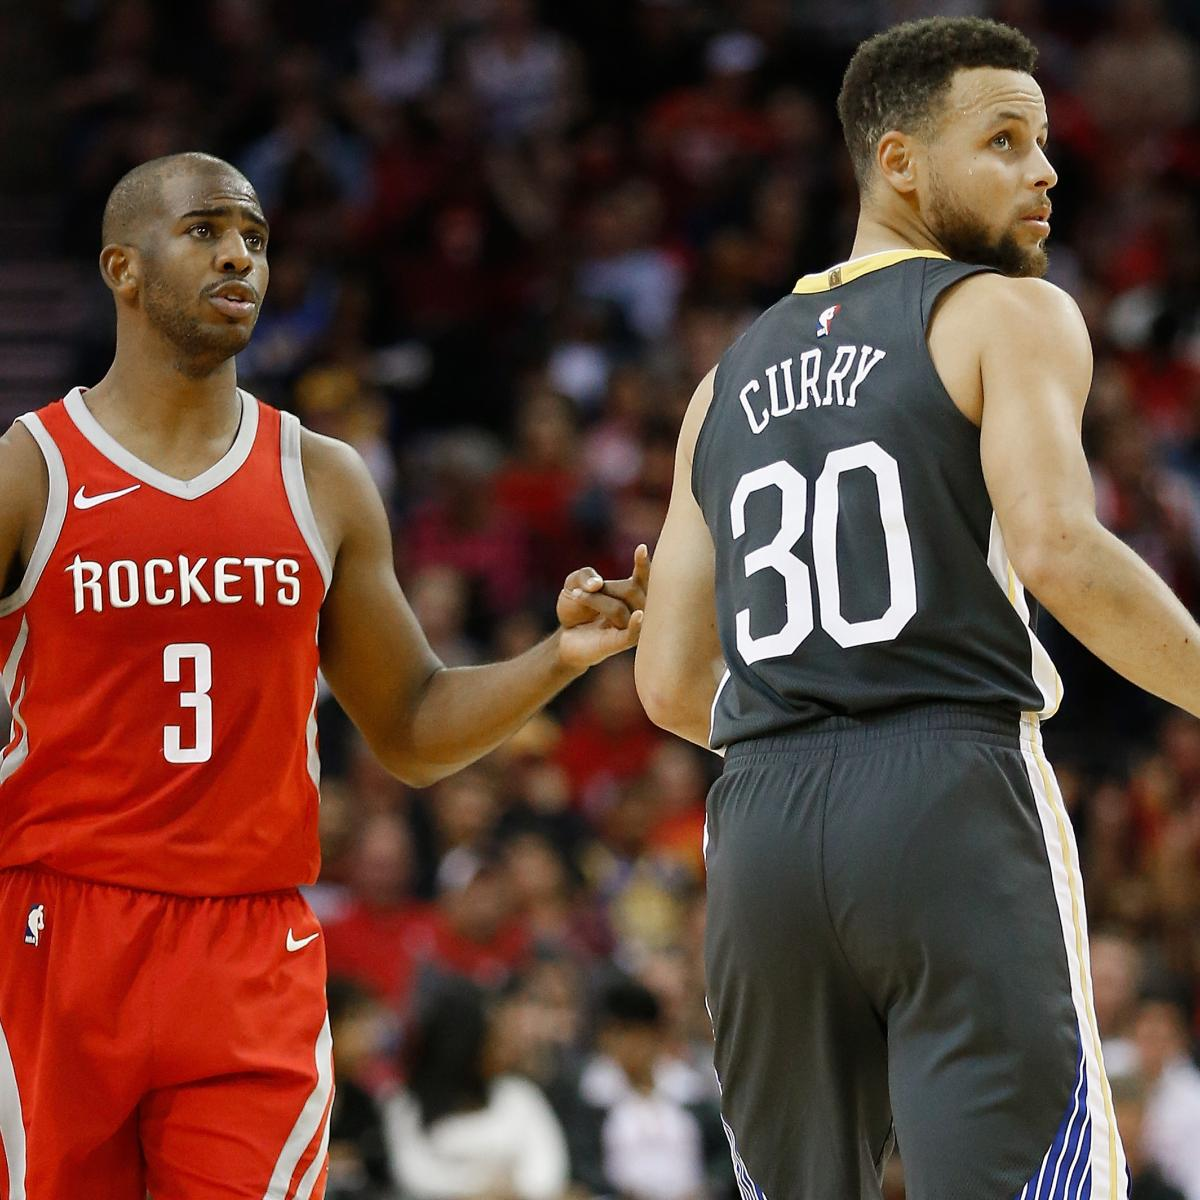 Stephen Curry Says Rockets Are Bigger Threat To Warriors